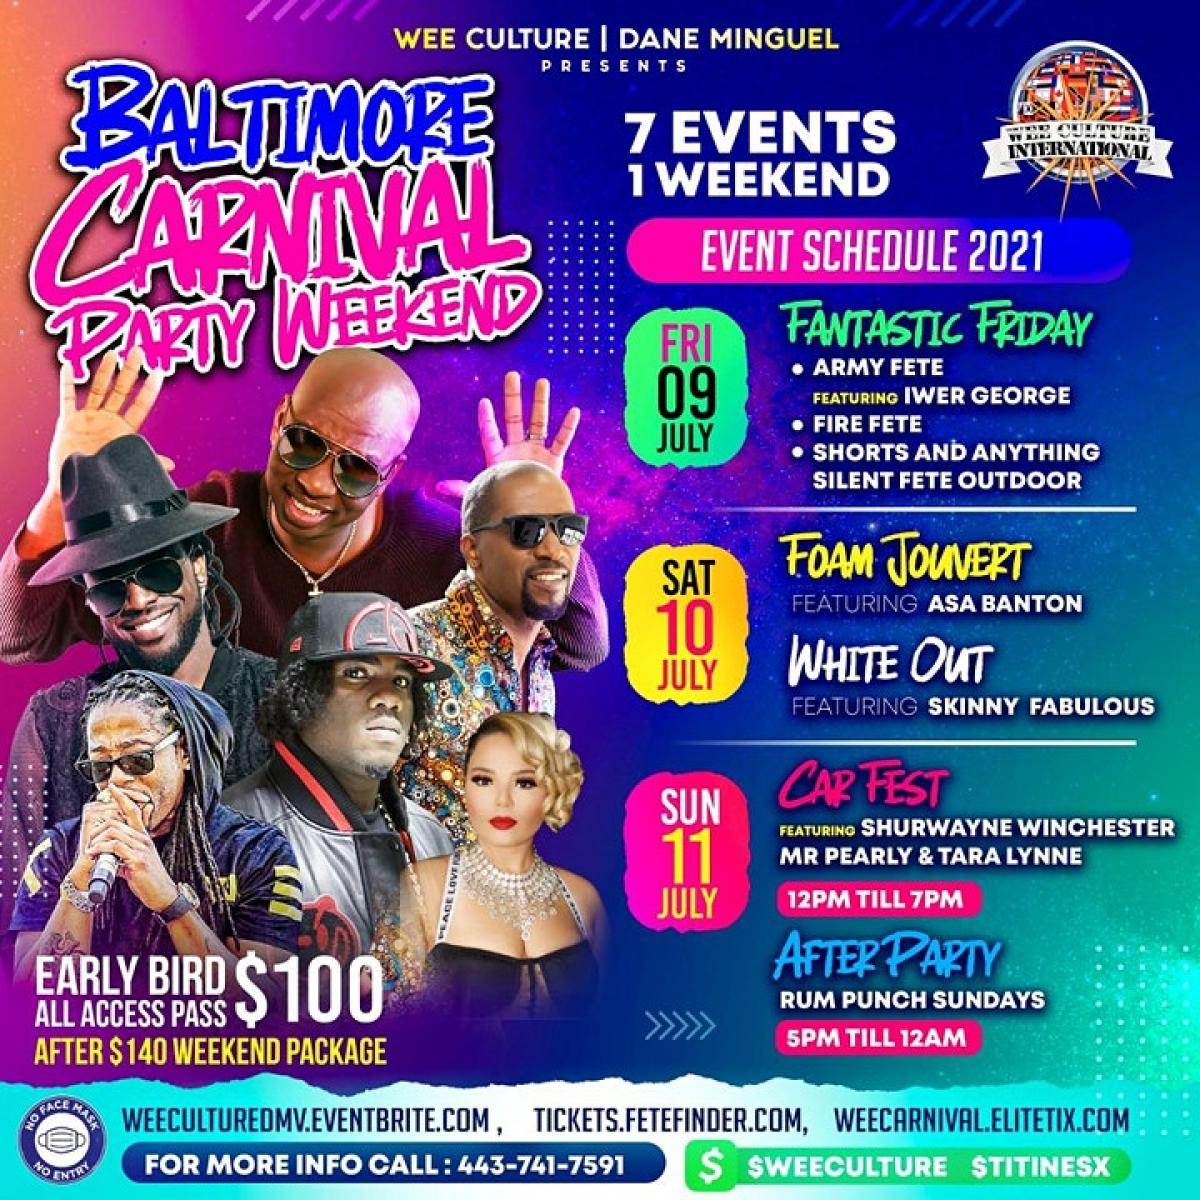 Baltimore Carnival Party Weekend Events flyer or graphic.